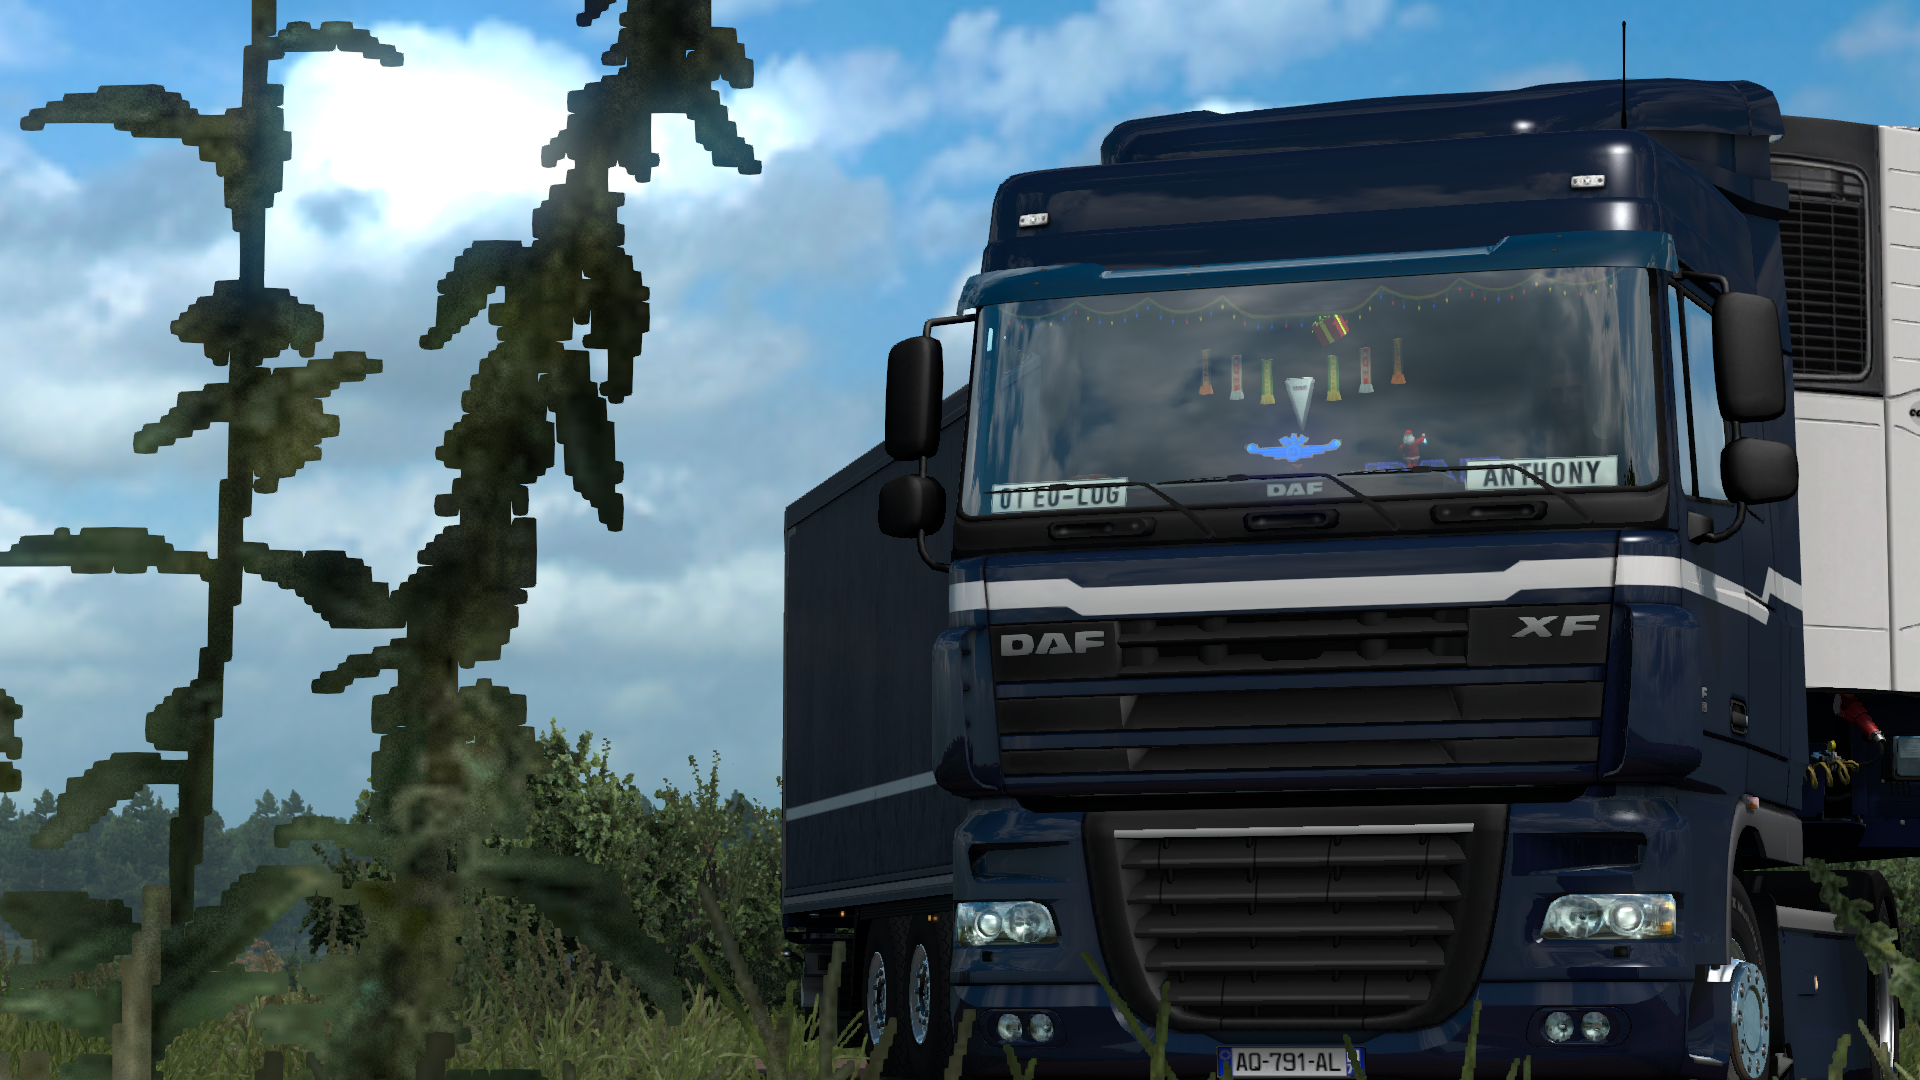 ets2_20181209_143700_00.png